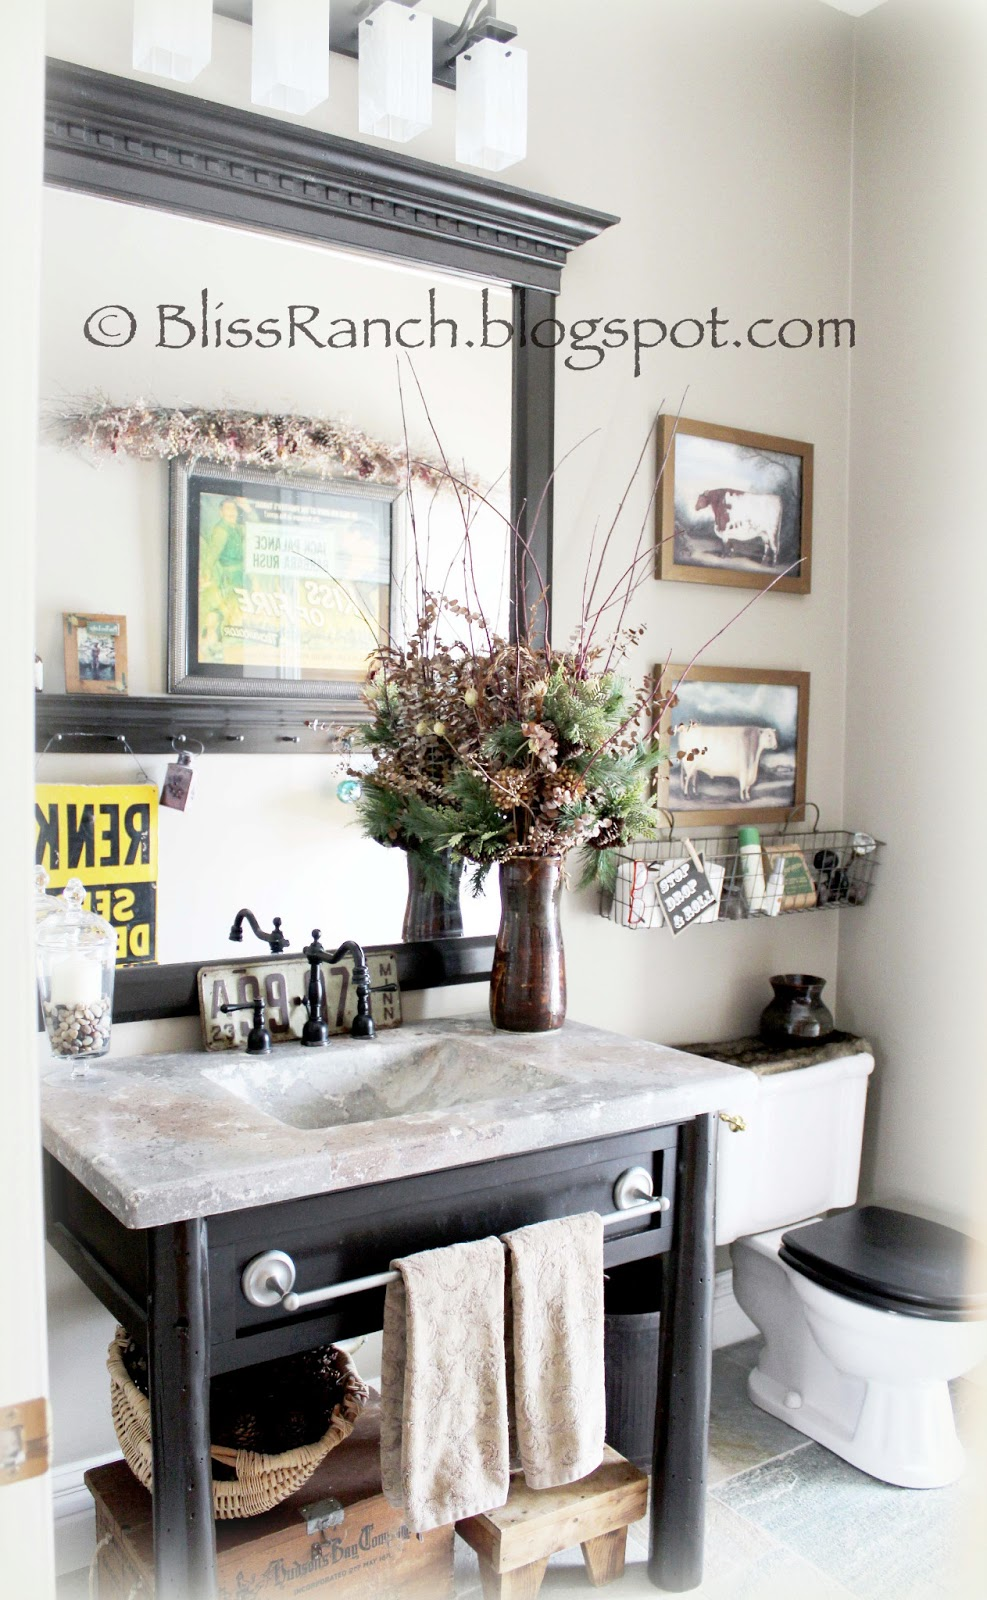 My Redo Of Our Manufactured Home In 2019: Bliss Ranch: Avoiding My Dining Room Redo With A Bathroom Tour